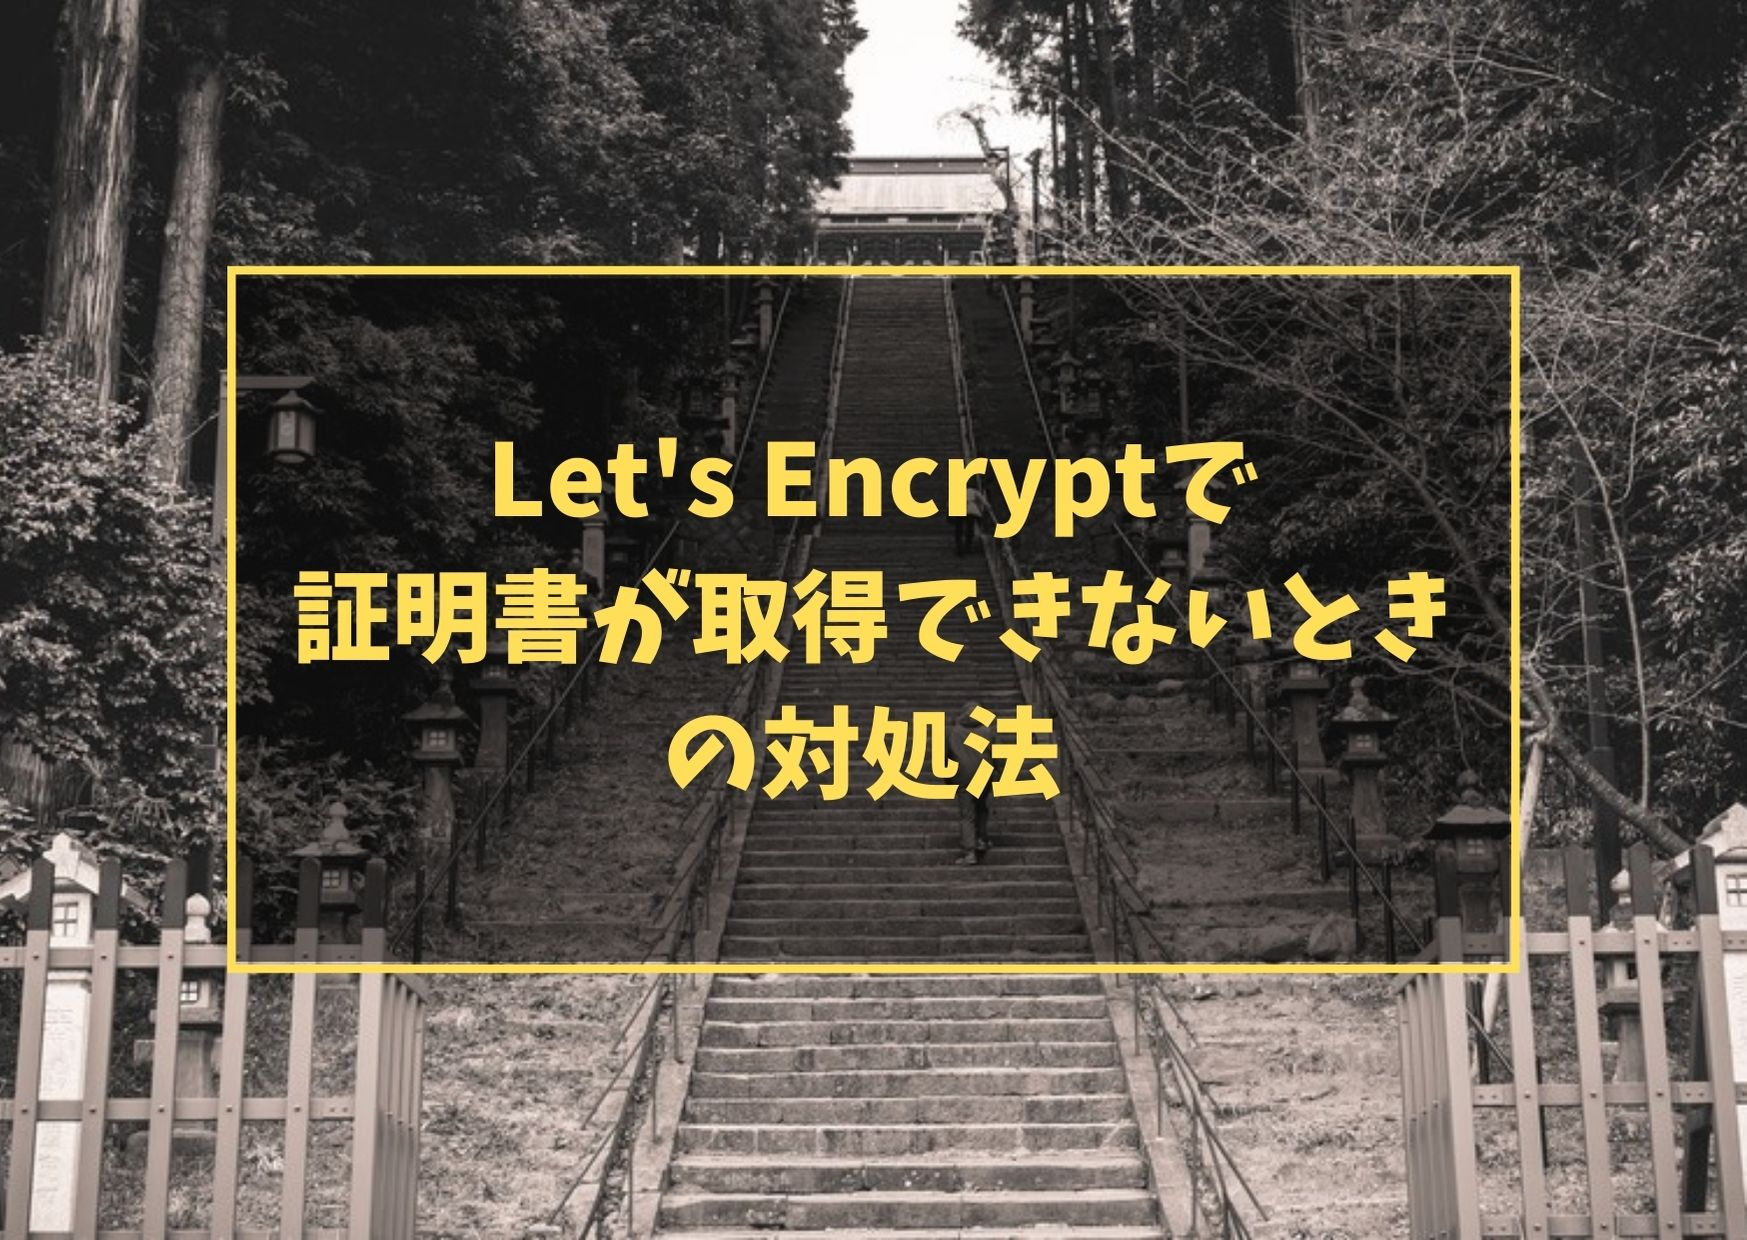 Let's Encryptで証明書が取得できないときの対処法 Problem binding to port 80: Could not bind to IPv4 or IPv6.